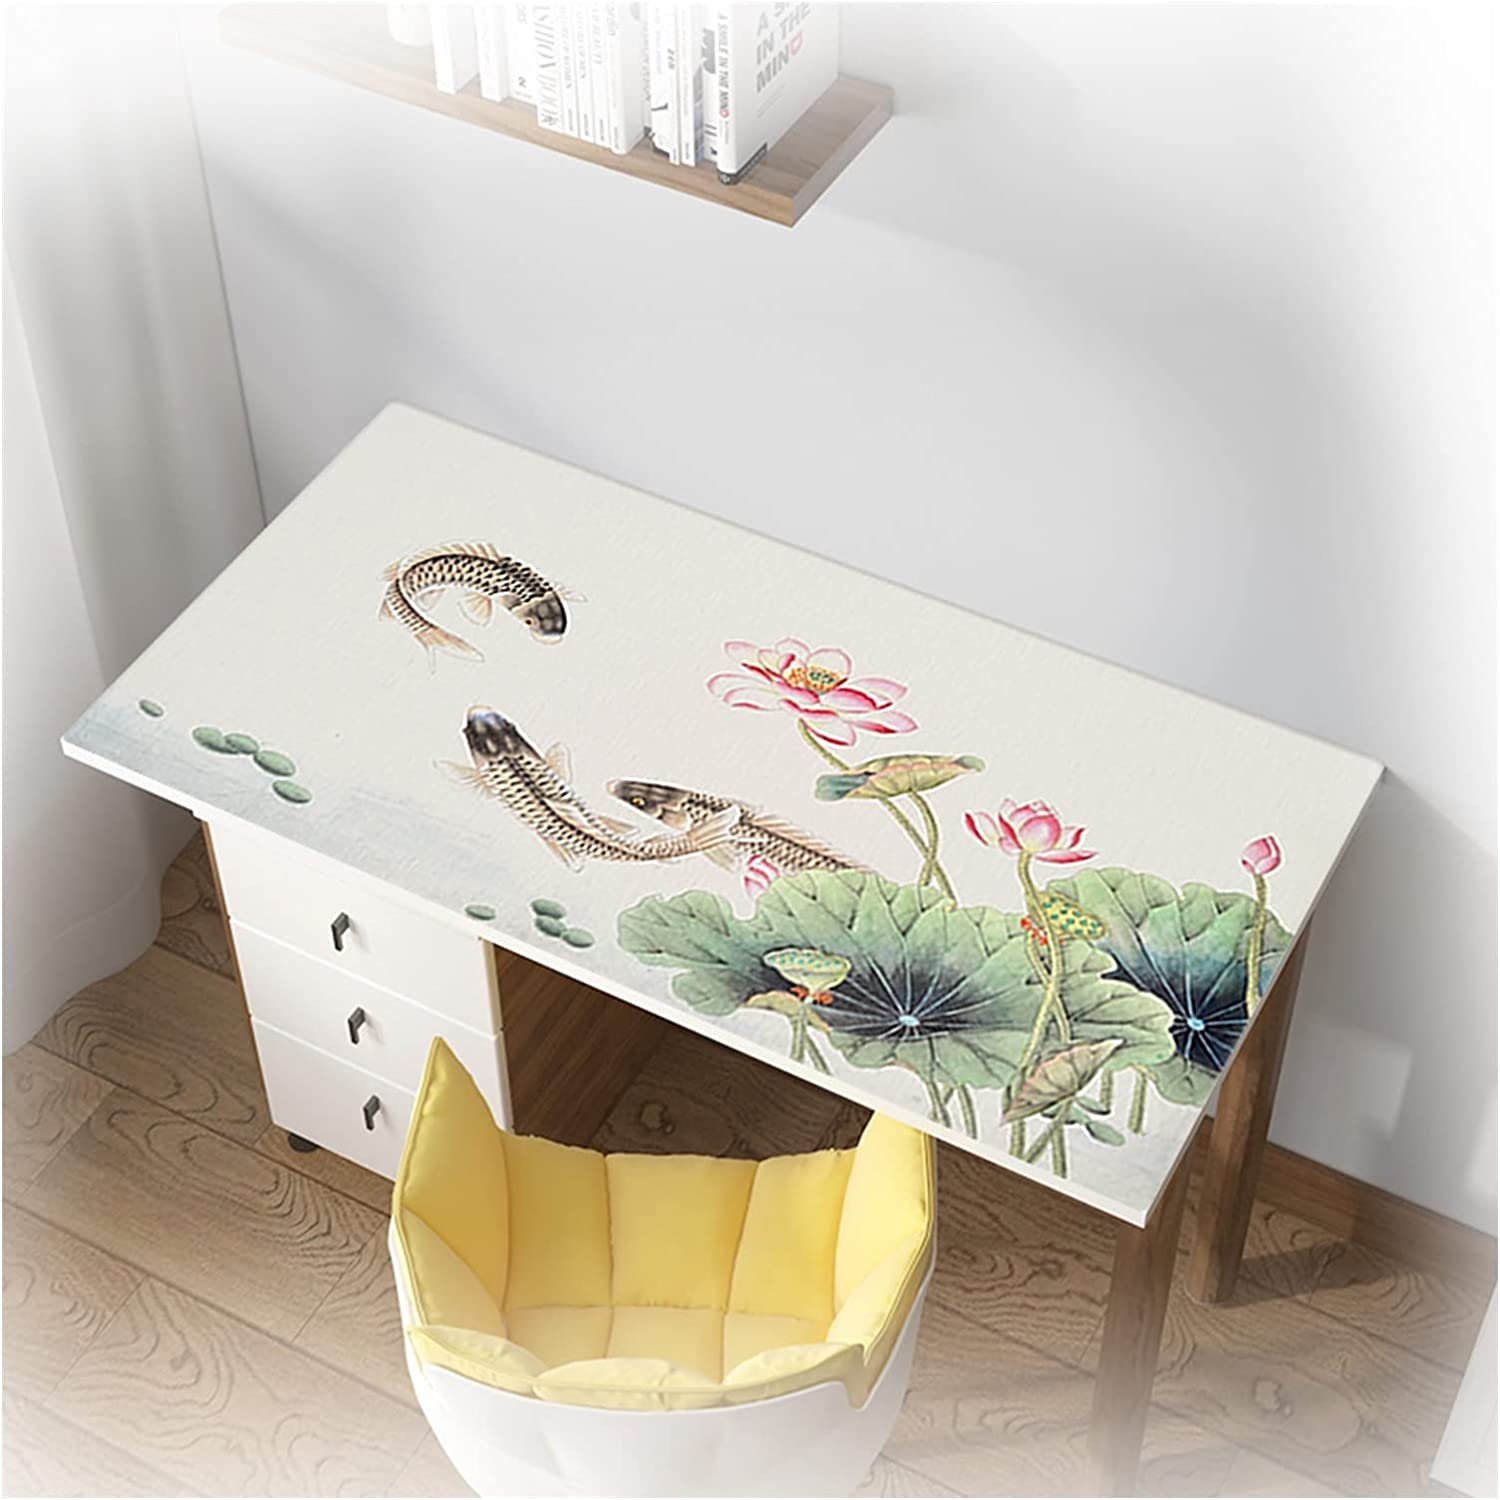 AYLYHD Indefinitely 1.6mm Thick Dining Table Cover Year-end annual account Protector Plasti PVC